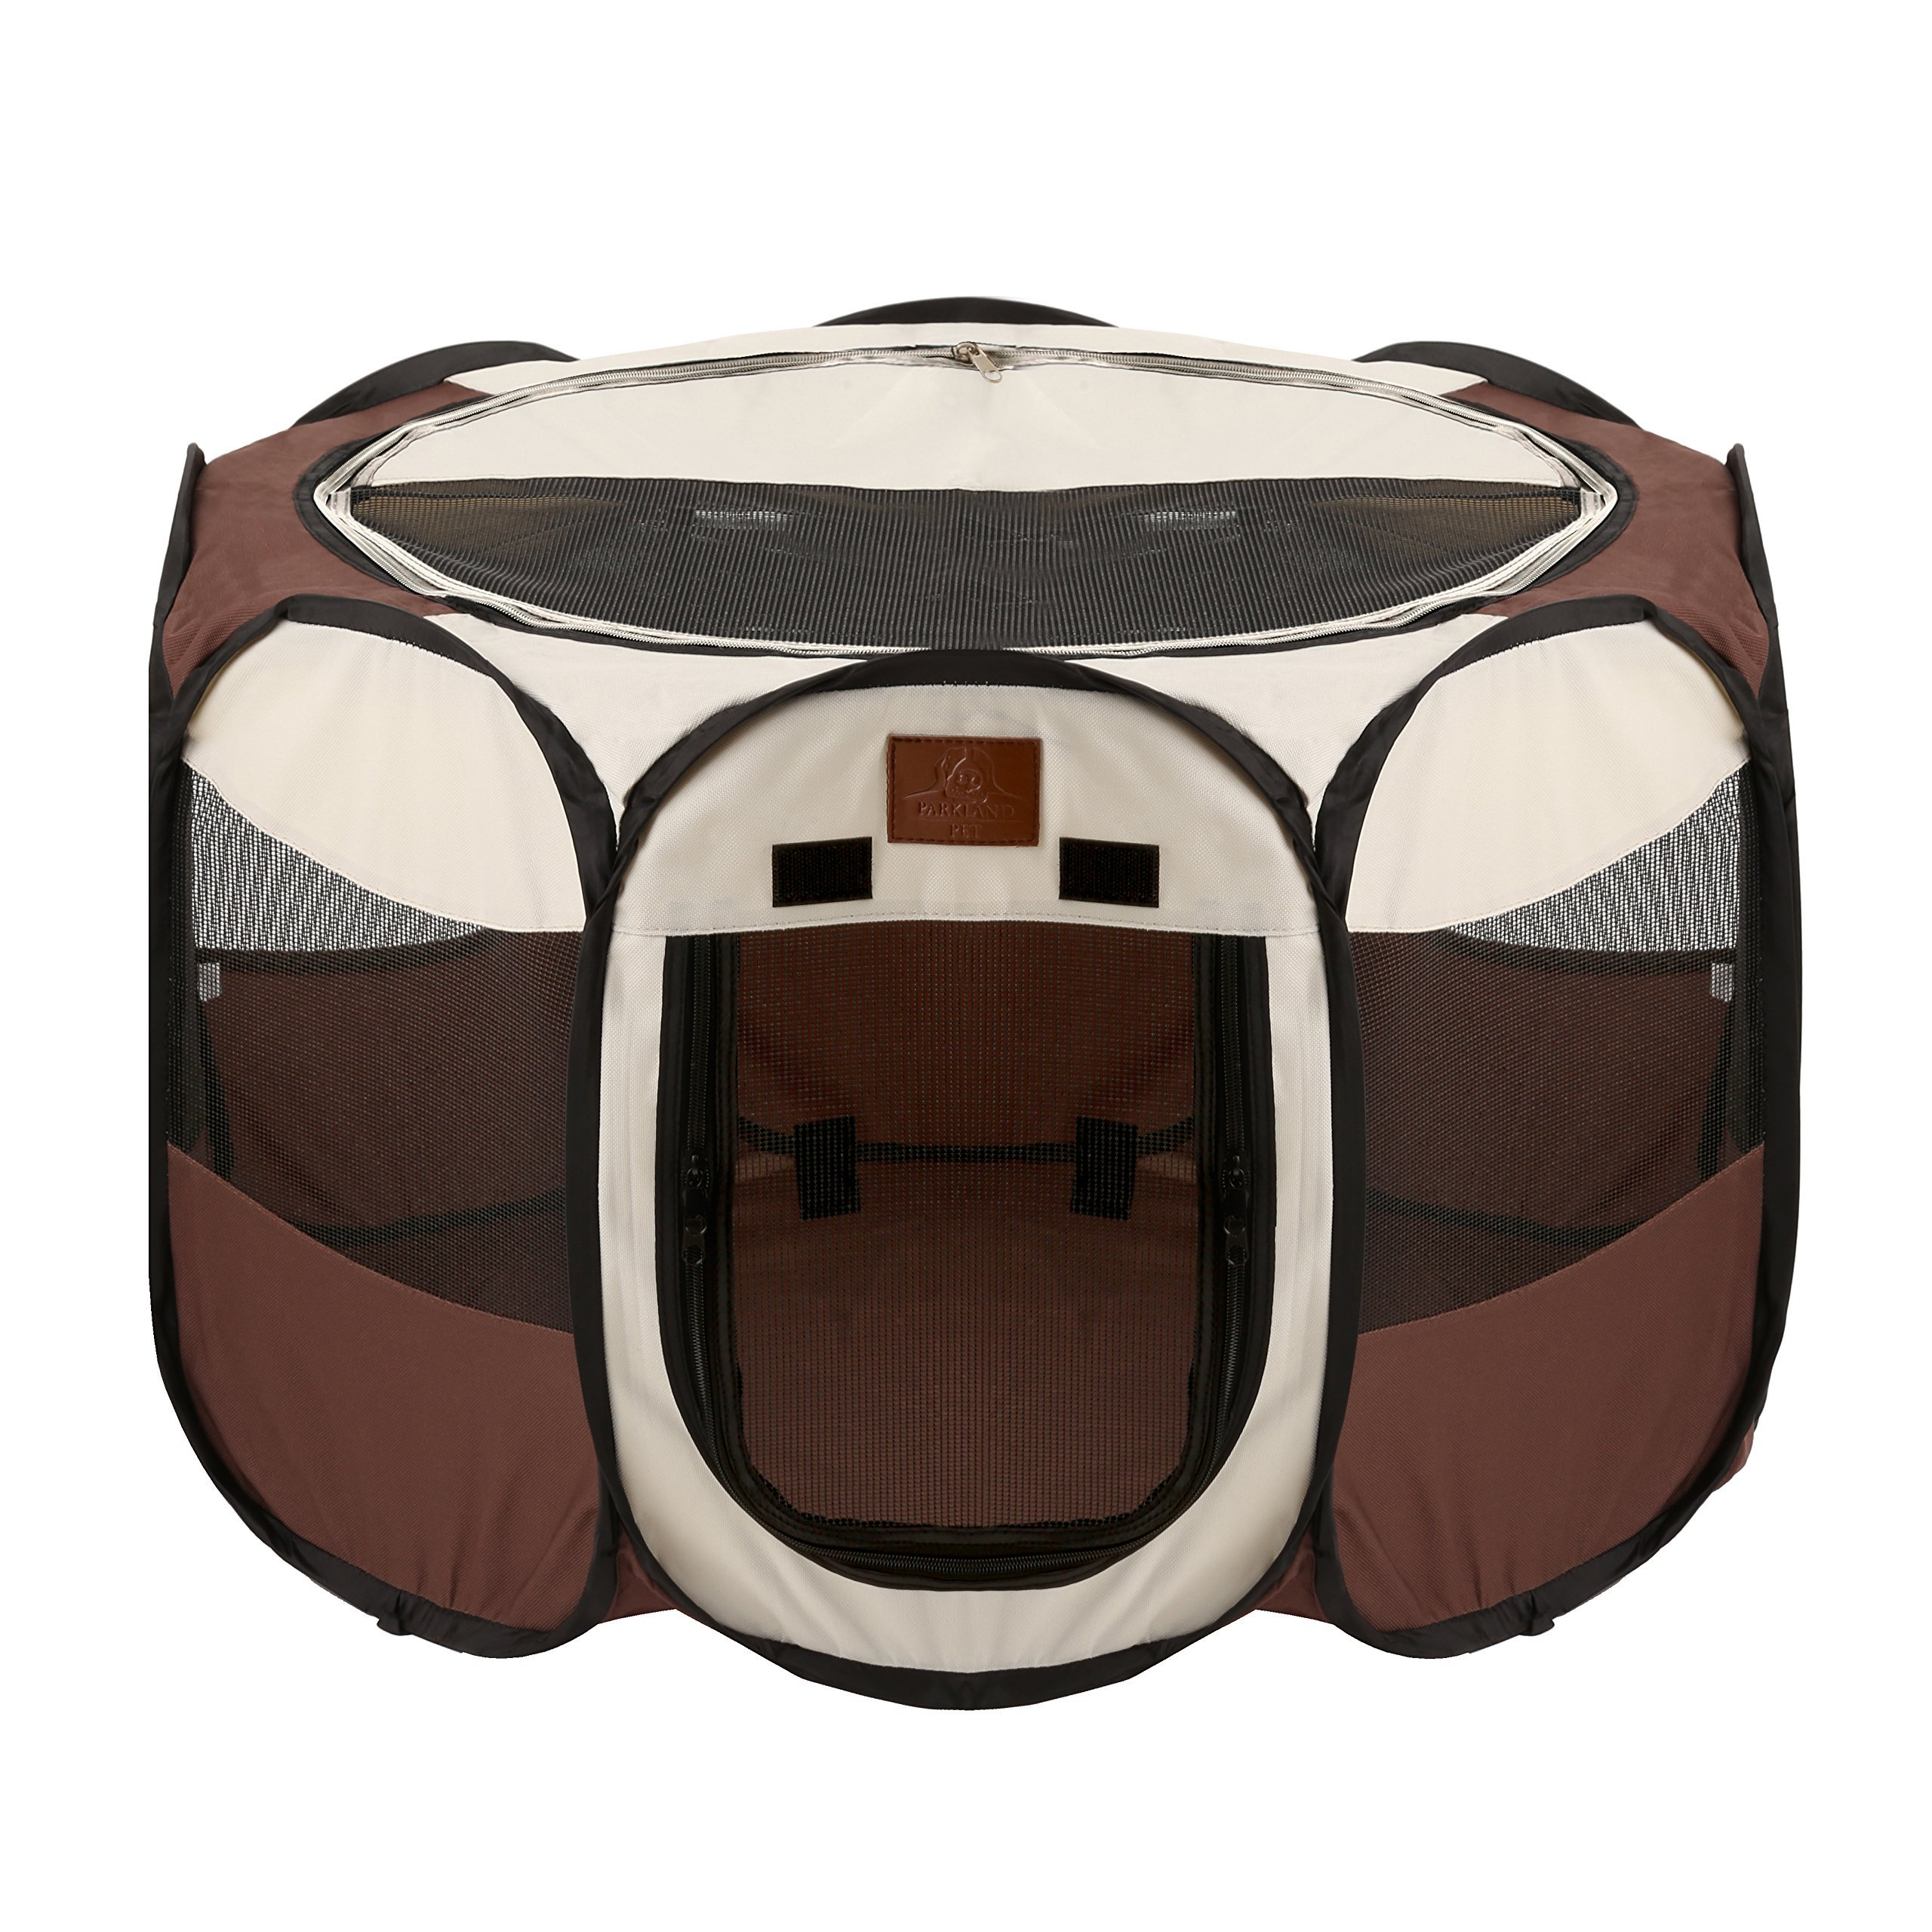 Parkland Pet Portable Foldable Playpen Exercise Kennel Dogs Cats Indoor/Outdoor Removable Mesh Shade Cover, Small